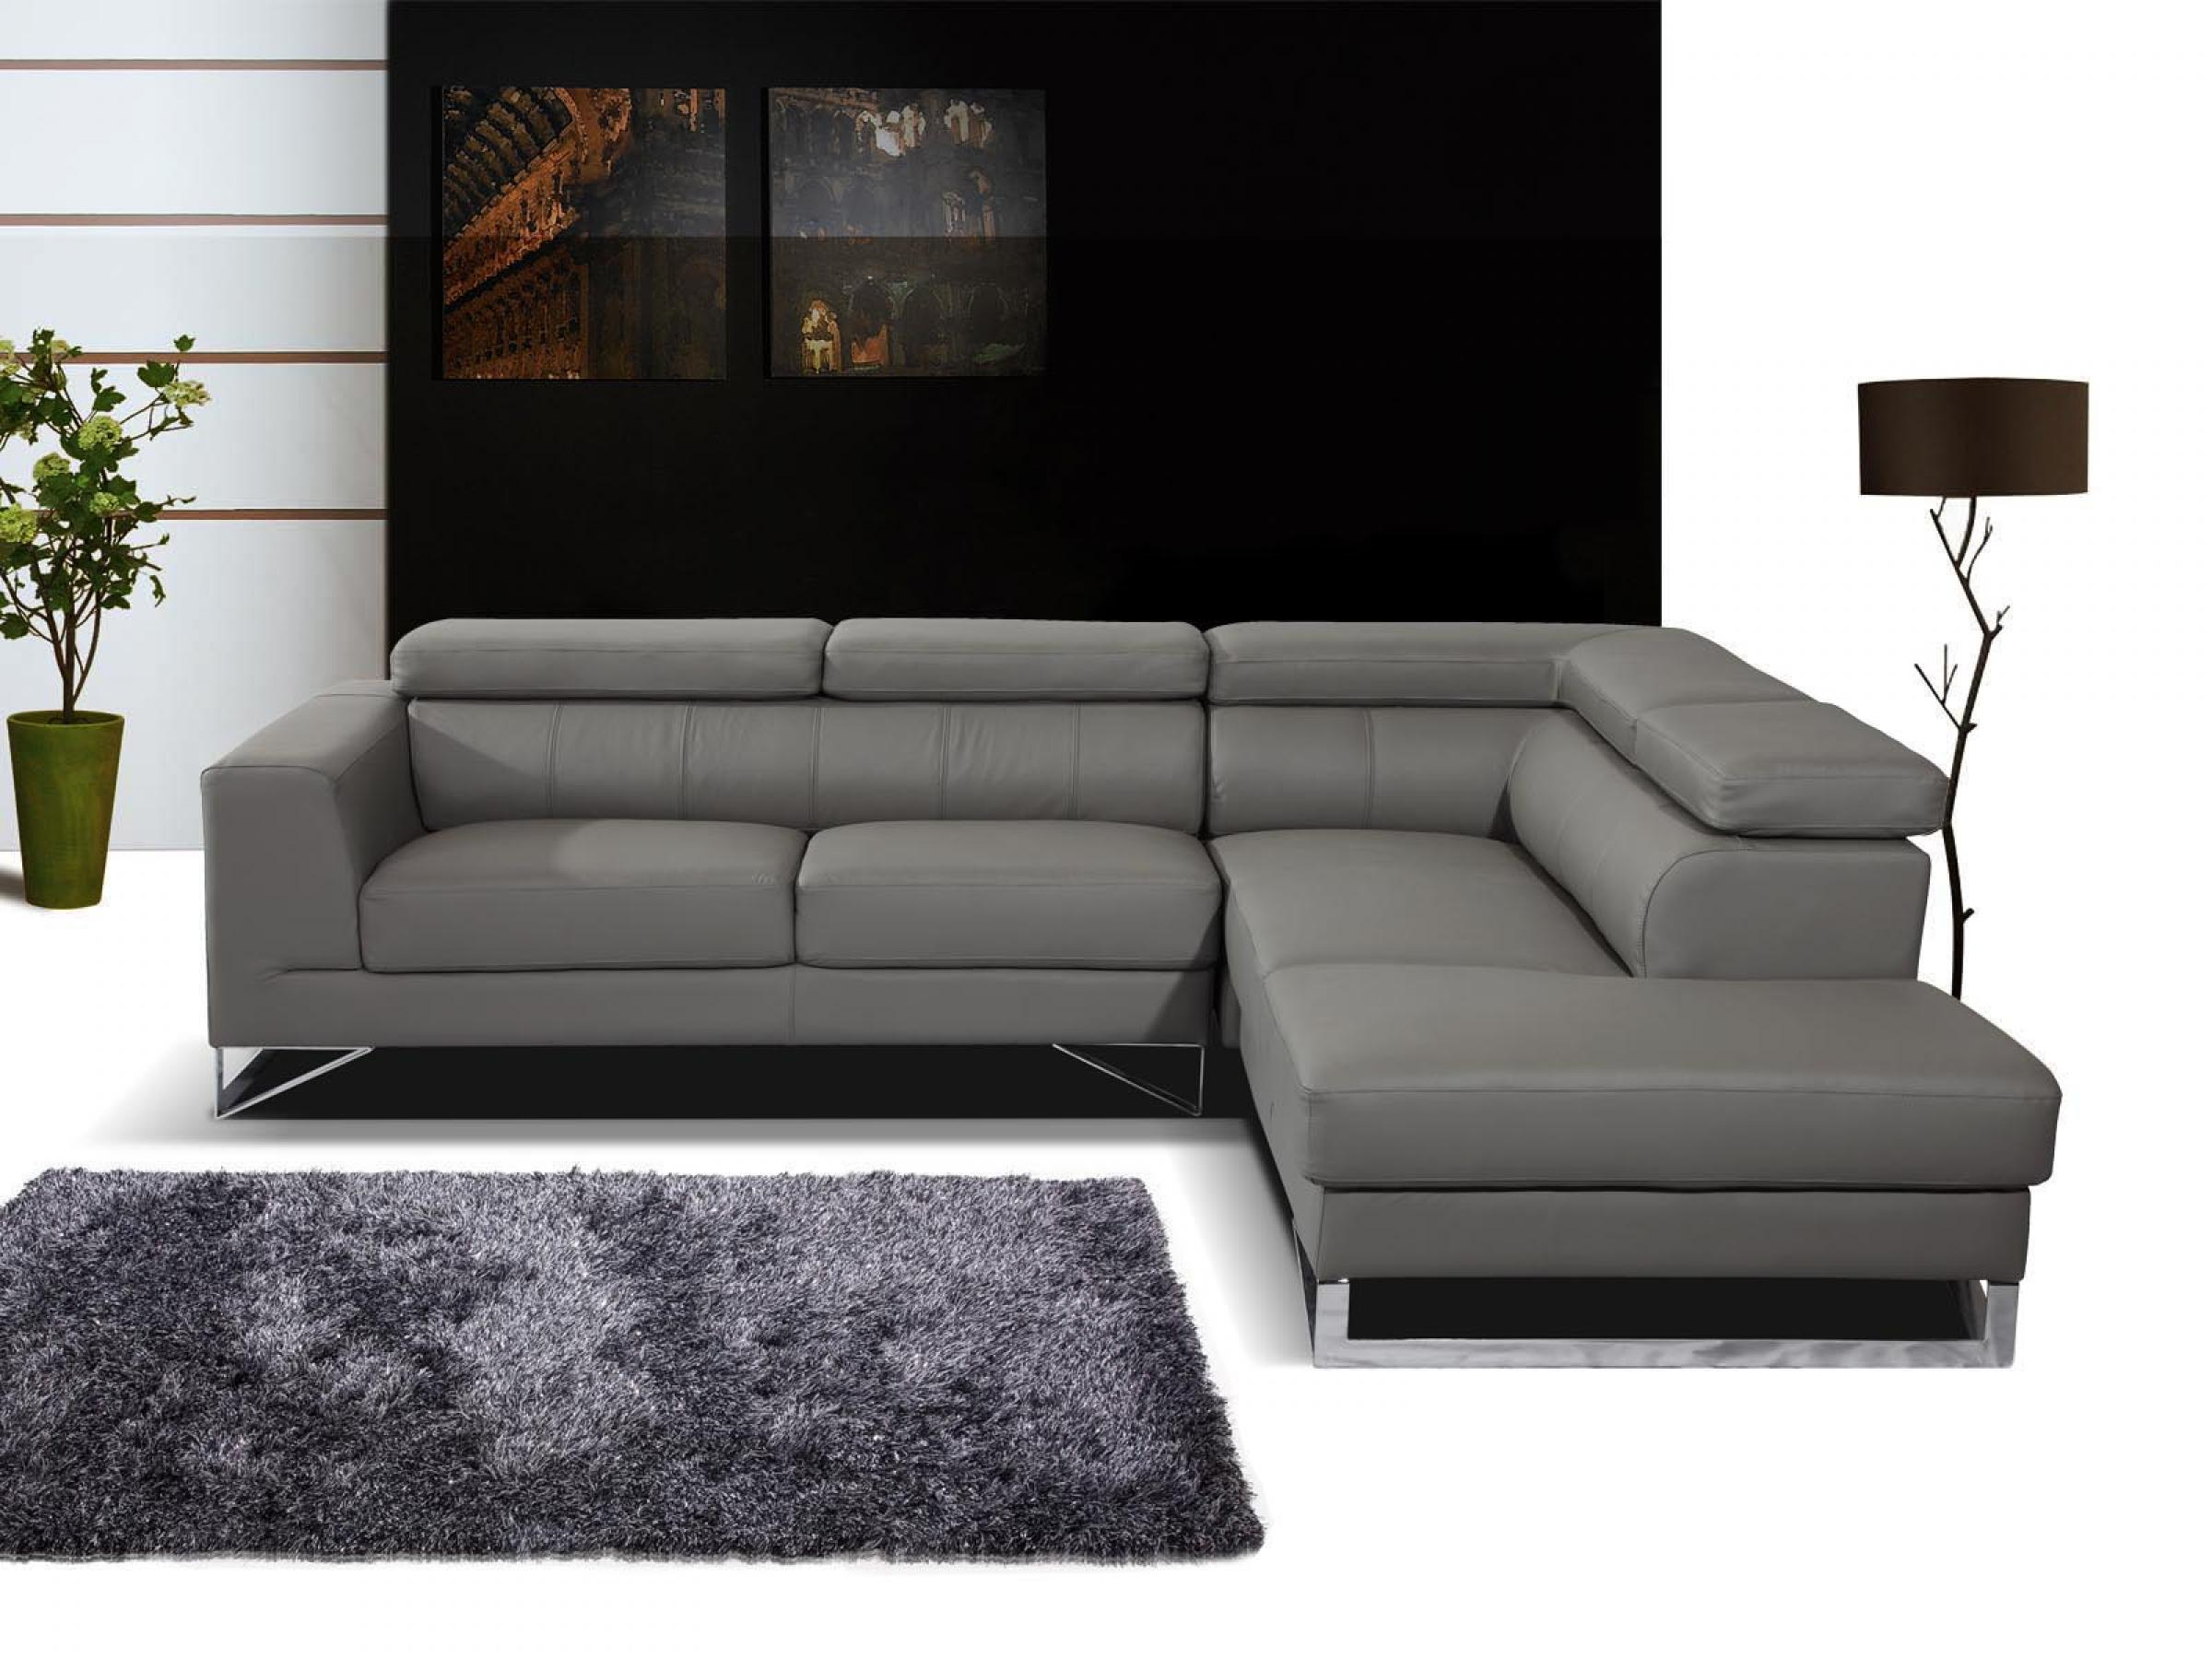 Canape D Angle Cuir Gris Anthracite Idees De Decoration Interieure